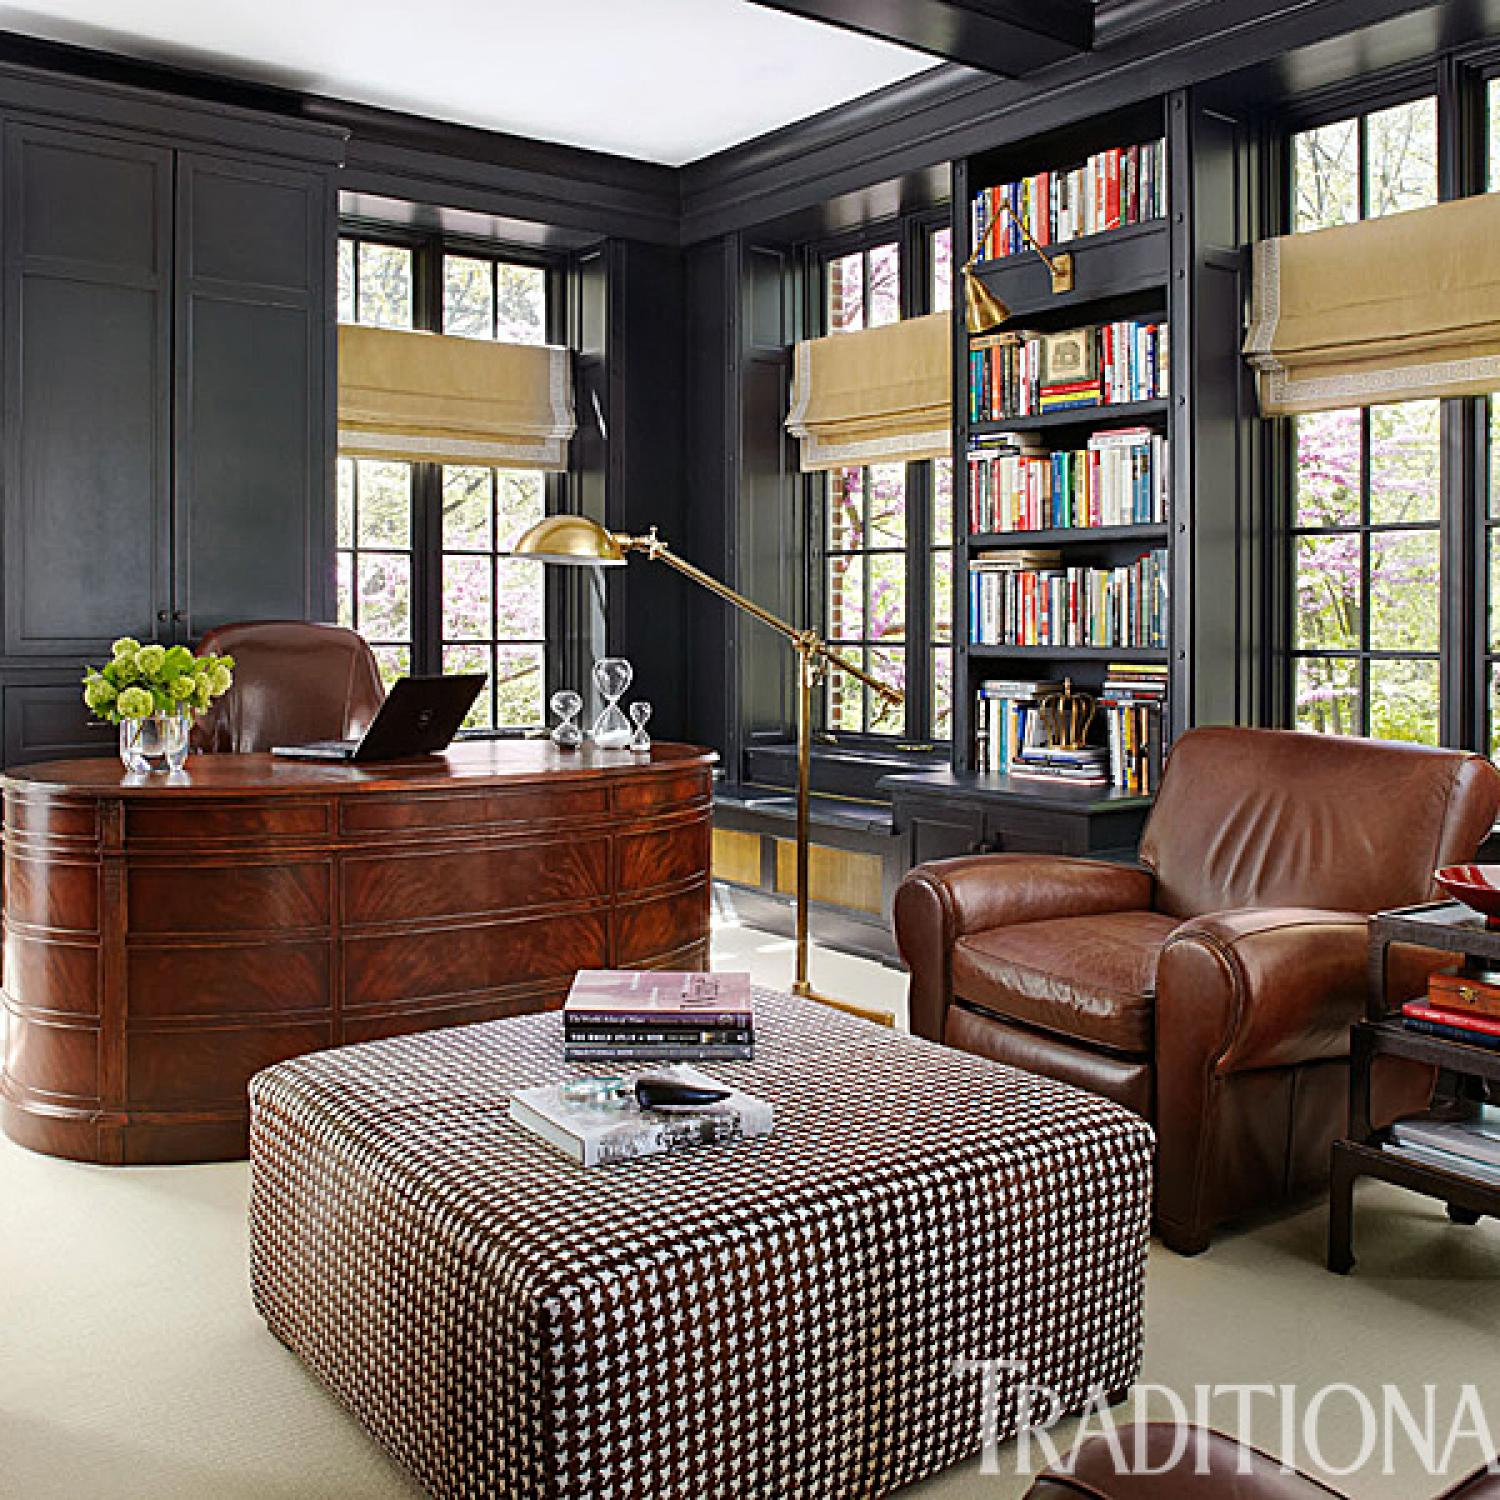 Gorgeous Updated Classic Home: Handsome Rooms With A Masculine Vibe